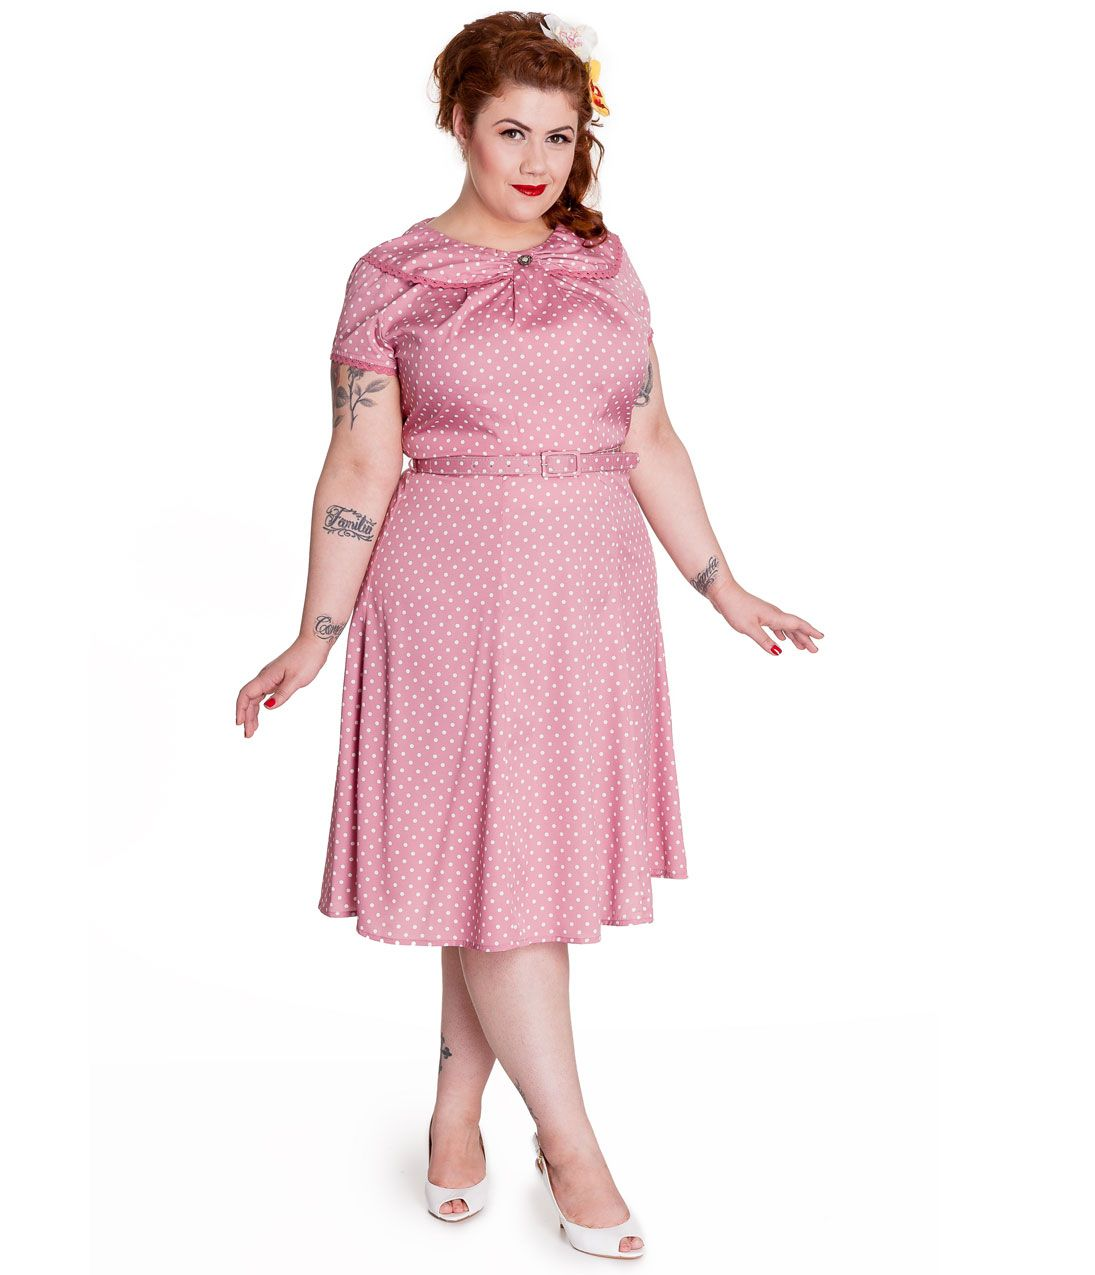 Retro 1950s Polka Dot Dresses for Sale | 1940s style, 1940s and ...